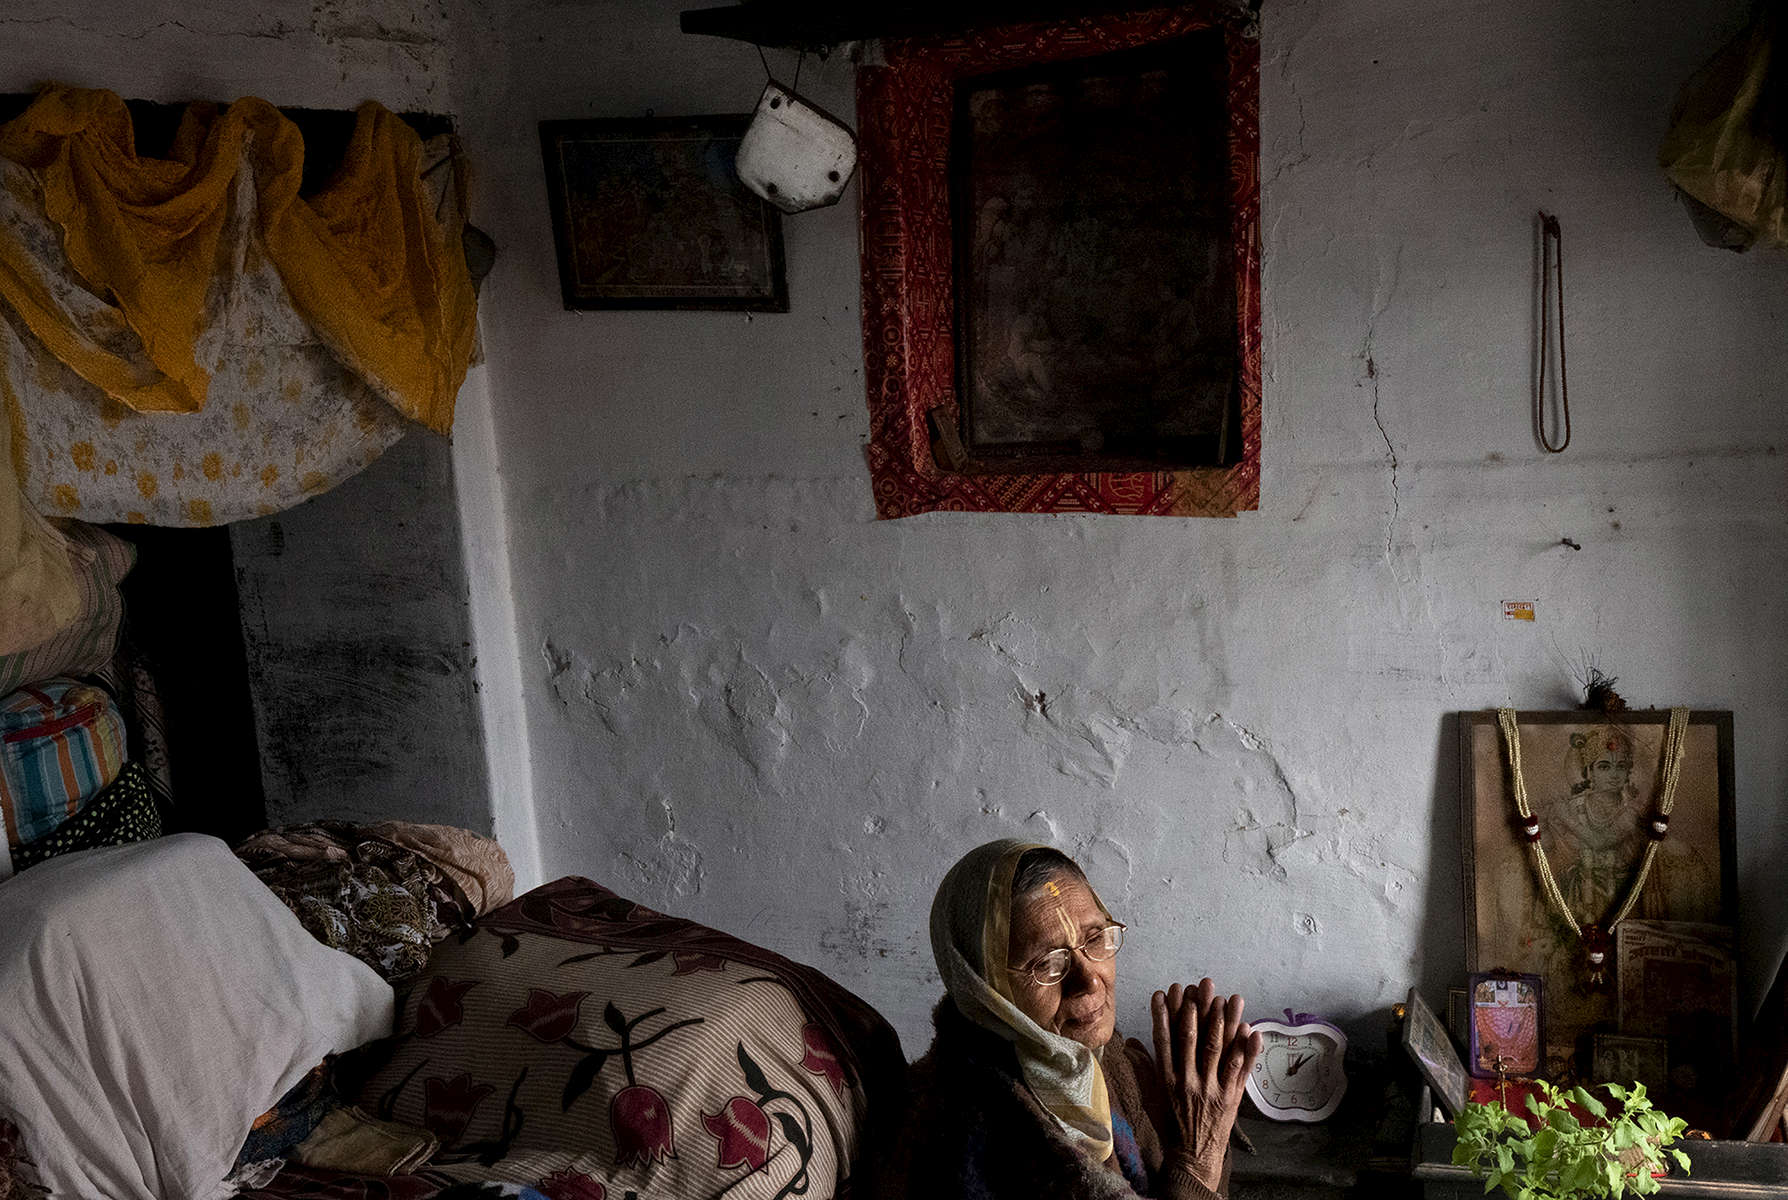 Meena Devi, 78, a widow, begins to pray at Rak Kuti ashram in Varanasi, India on January 07, 2019. Meena is originally from Nepal, and has lived in the ashram for the past 25 years. Before that, she lived in the same building as Sita Devi, 52, and her mother-in-law, Goma Devi, 96, who now also occupy this ashram. Meena is a child widow. {quote}Maybe I was cursed and I would have been forbidden to attend any functions because my husband died at a young age,{quote} she says. So with the help of relatives she moved here to live among other widows. She didn't want to marry again after her husband's death.